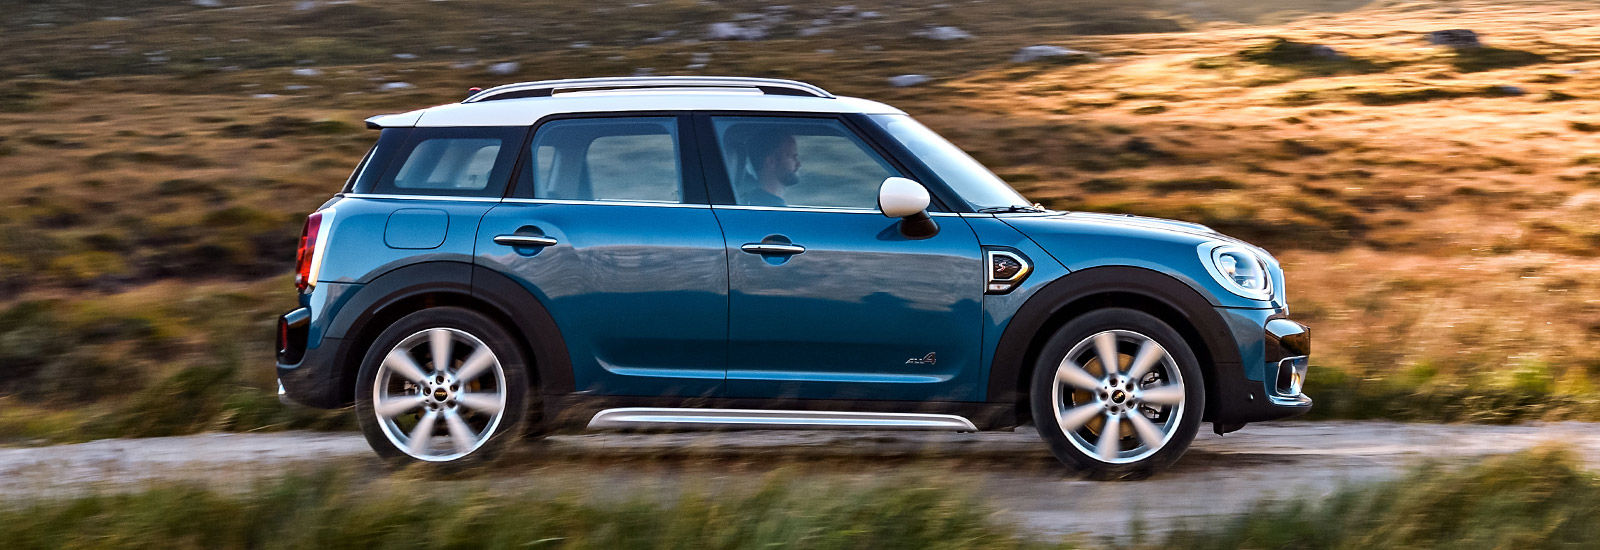 Mini Cooper Countryman Price Reviews